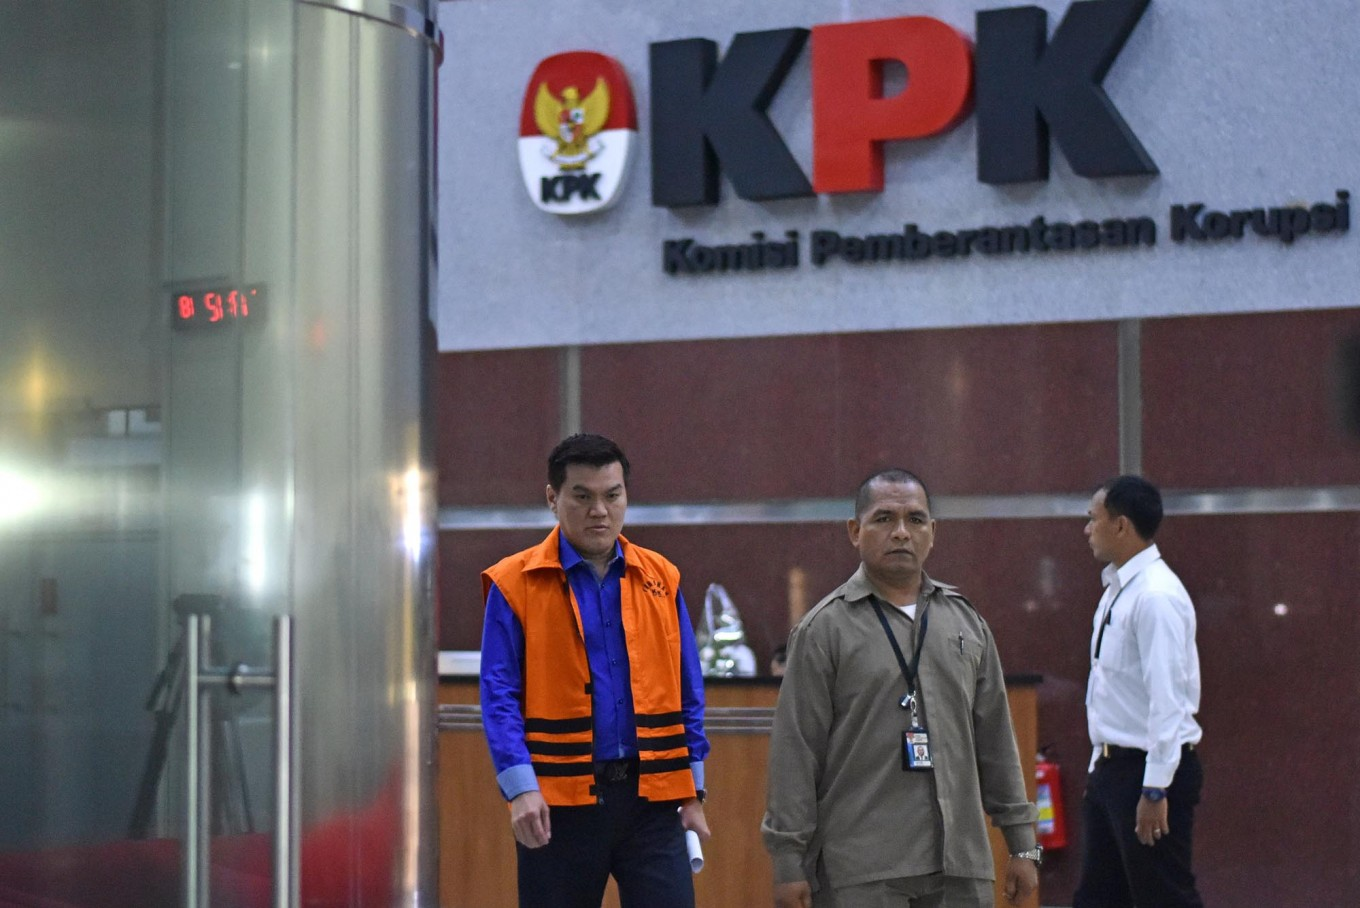 KPK gets new information on flow of funds in e-ID graft